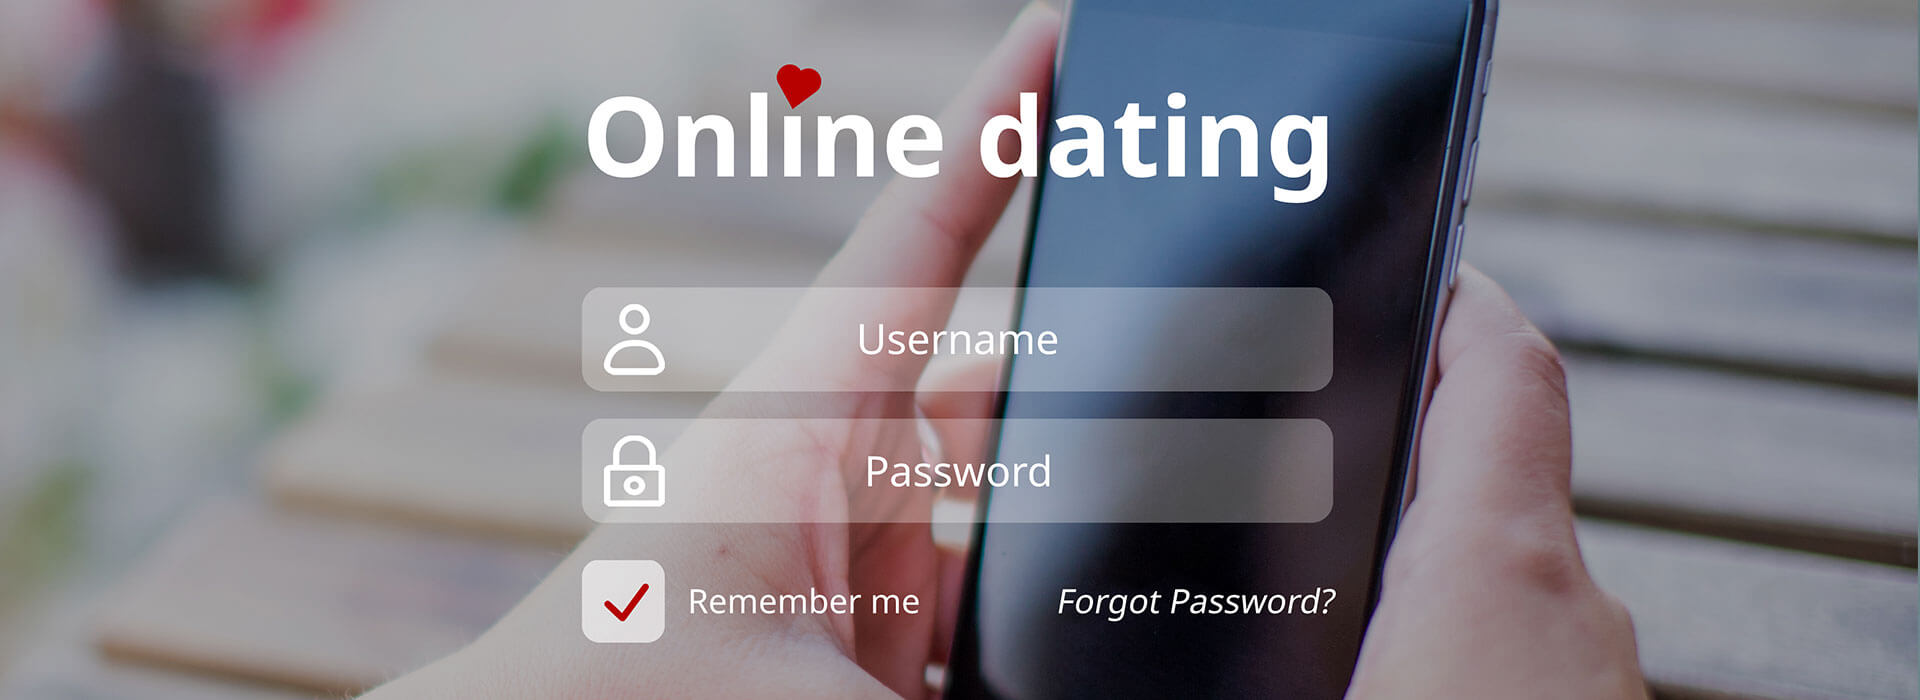 dating-site-concept